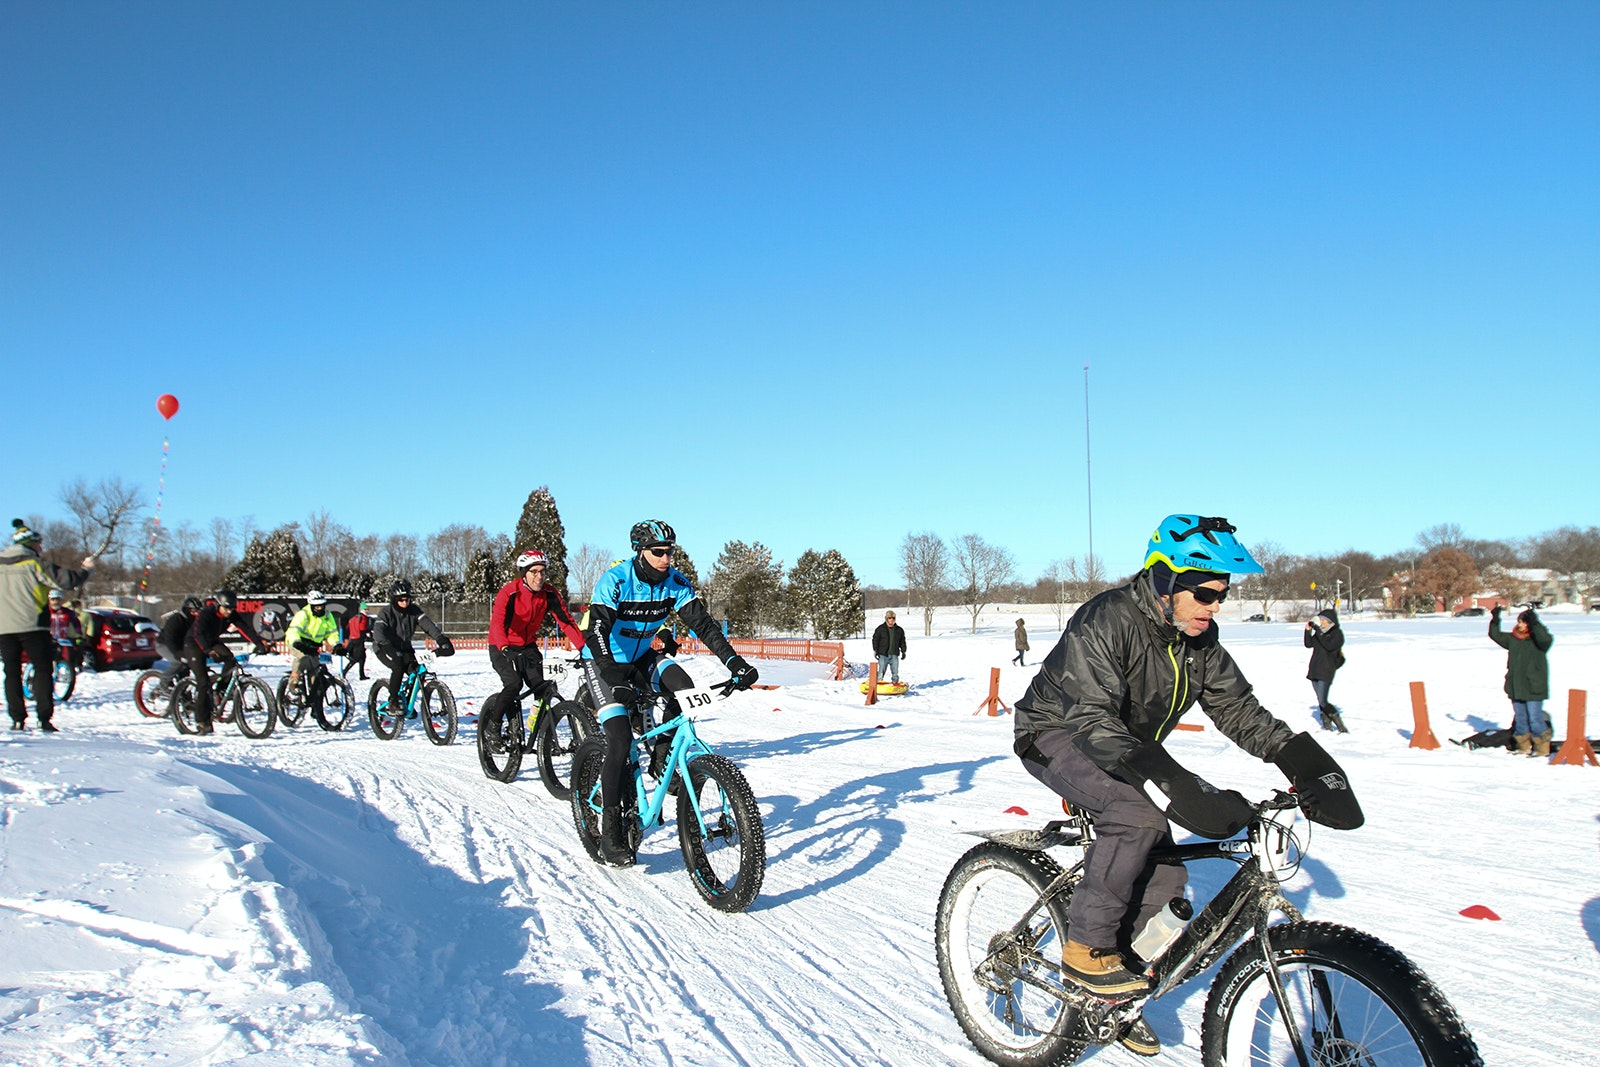 A fat bike race is one of several winter events that make up the annual Madison Winter Festival in Madison, Wisconsin.